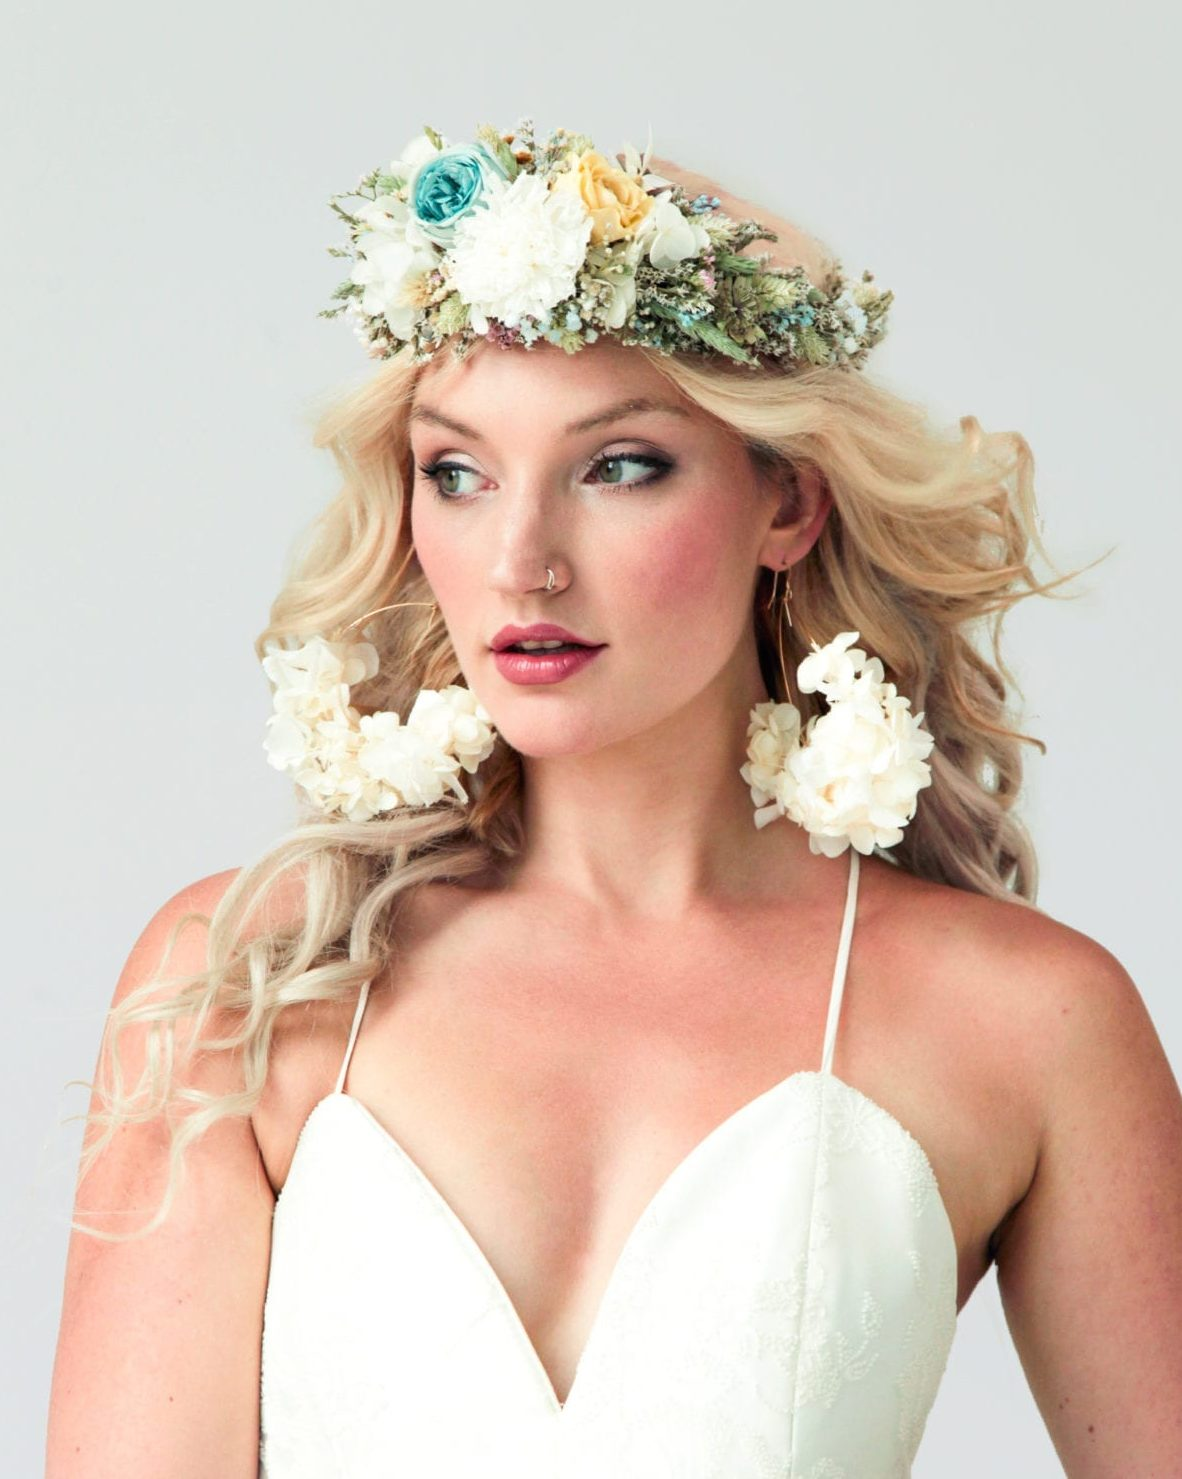 boho look with dried flower crown